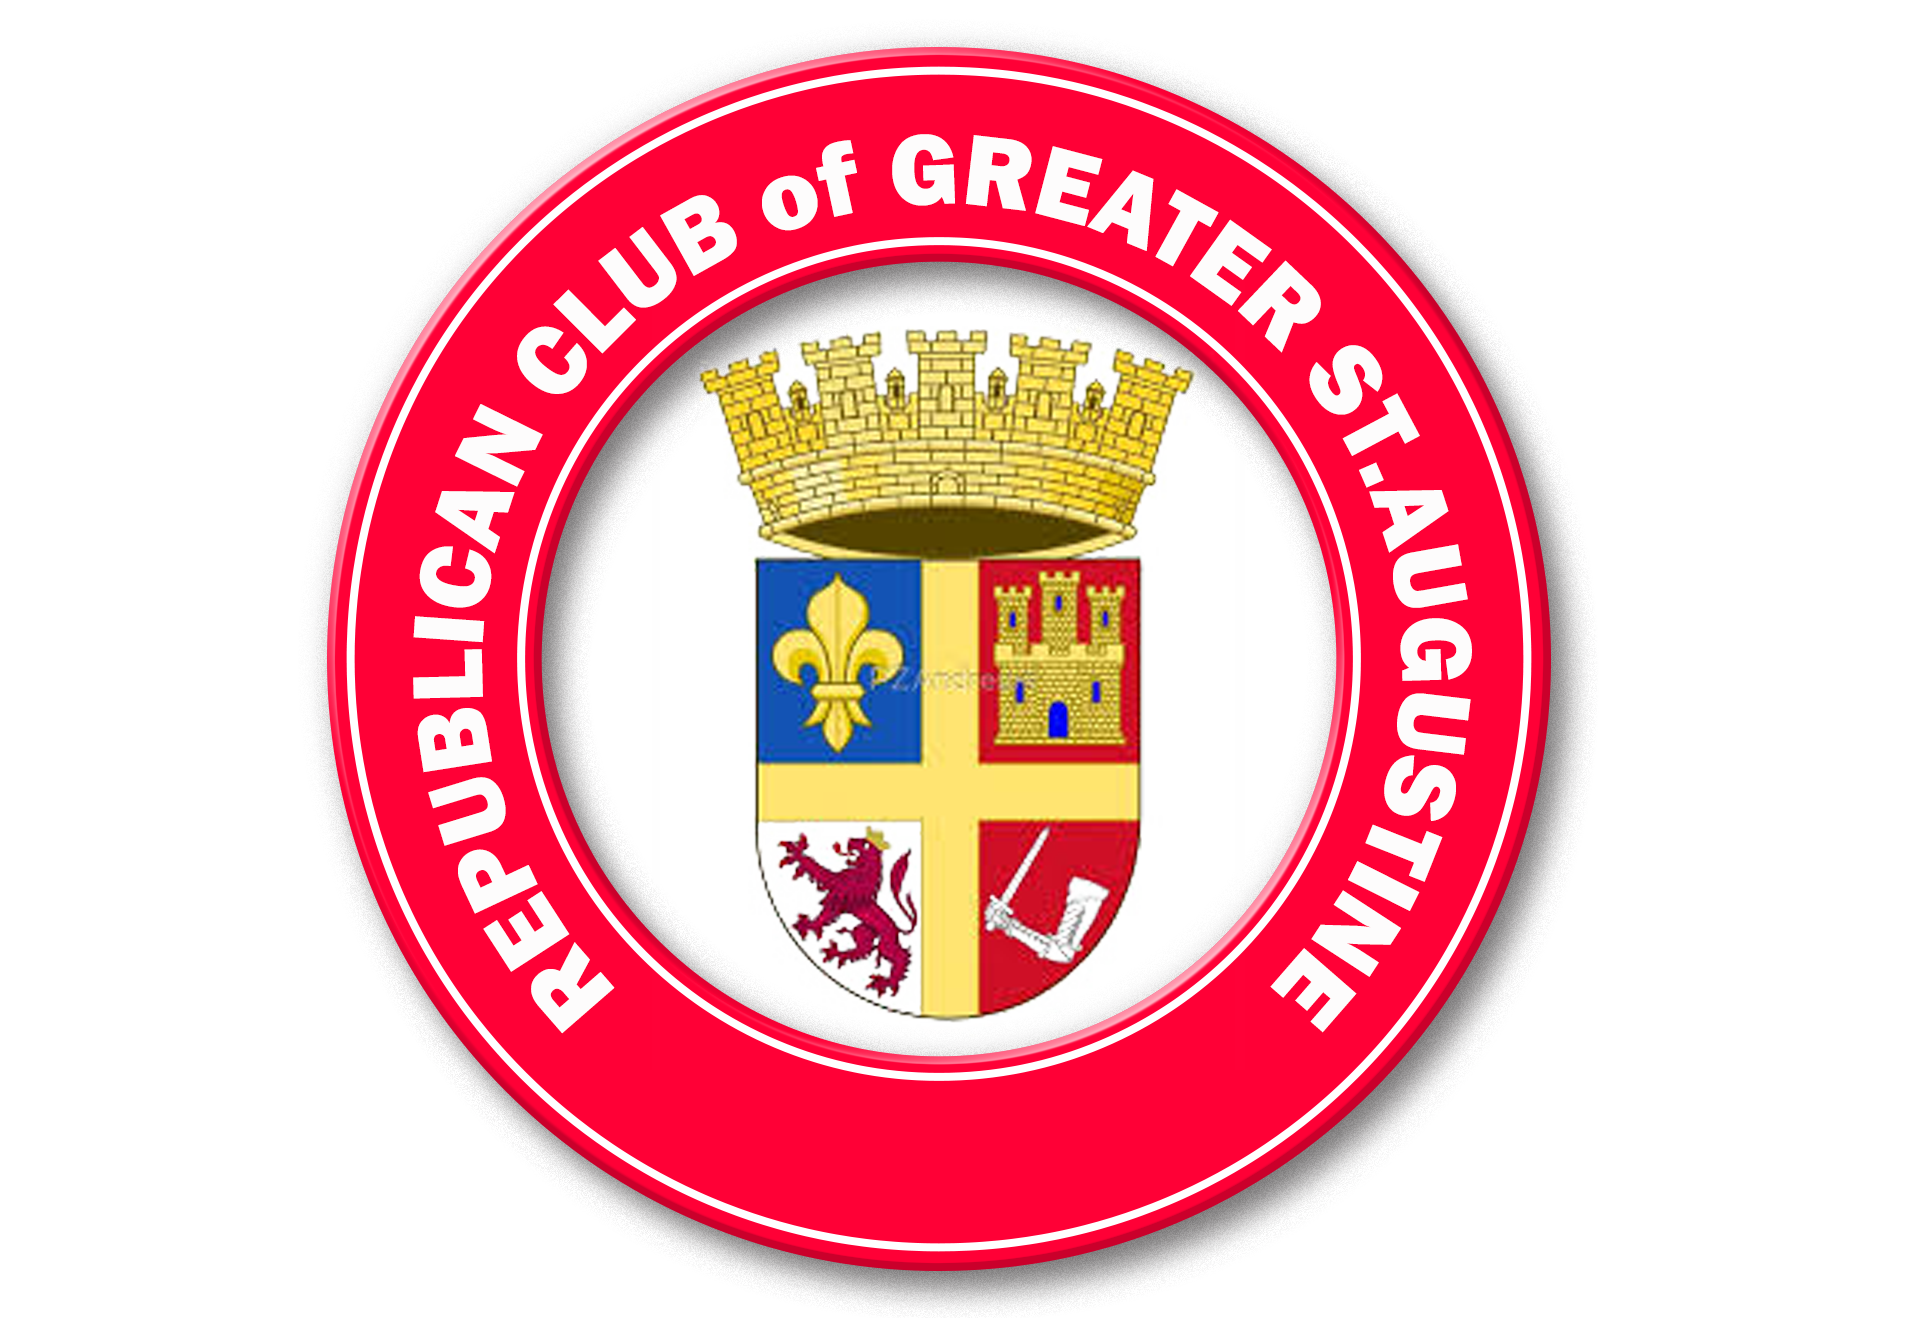 Republican Club of Greater St. Augustine